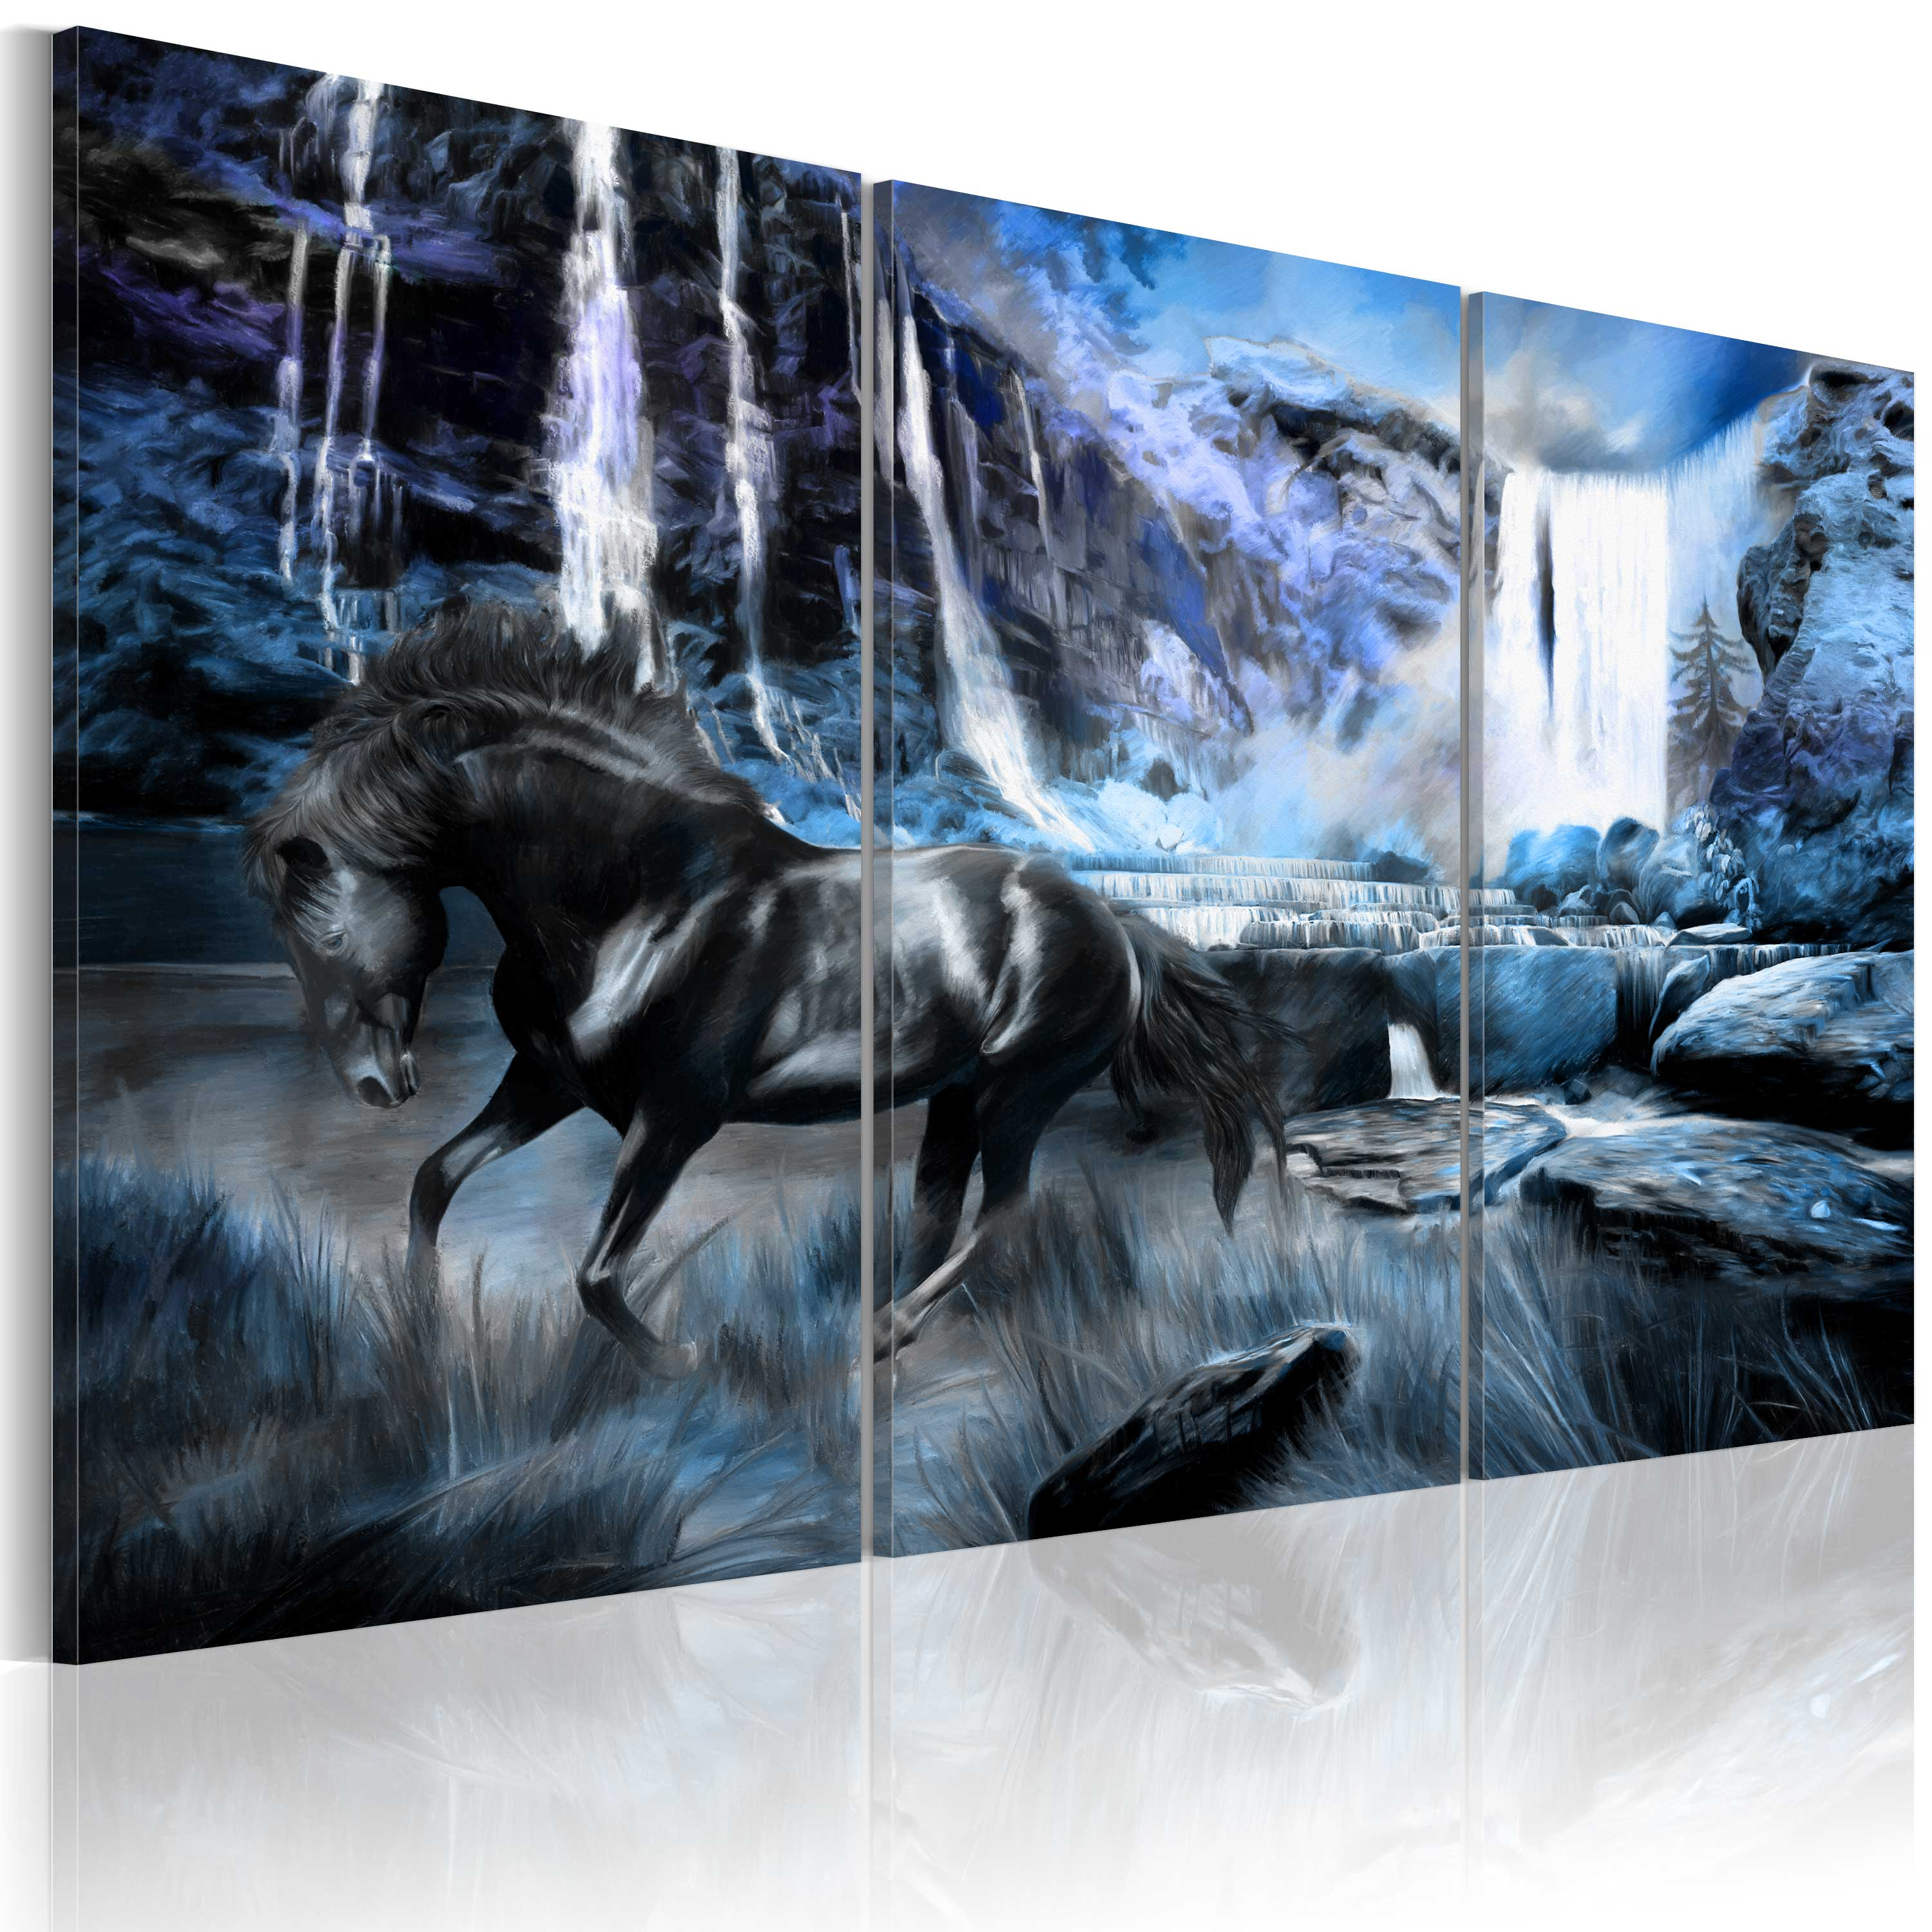 Obraz - Waterfall in colour of sapphire 120x80